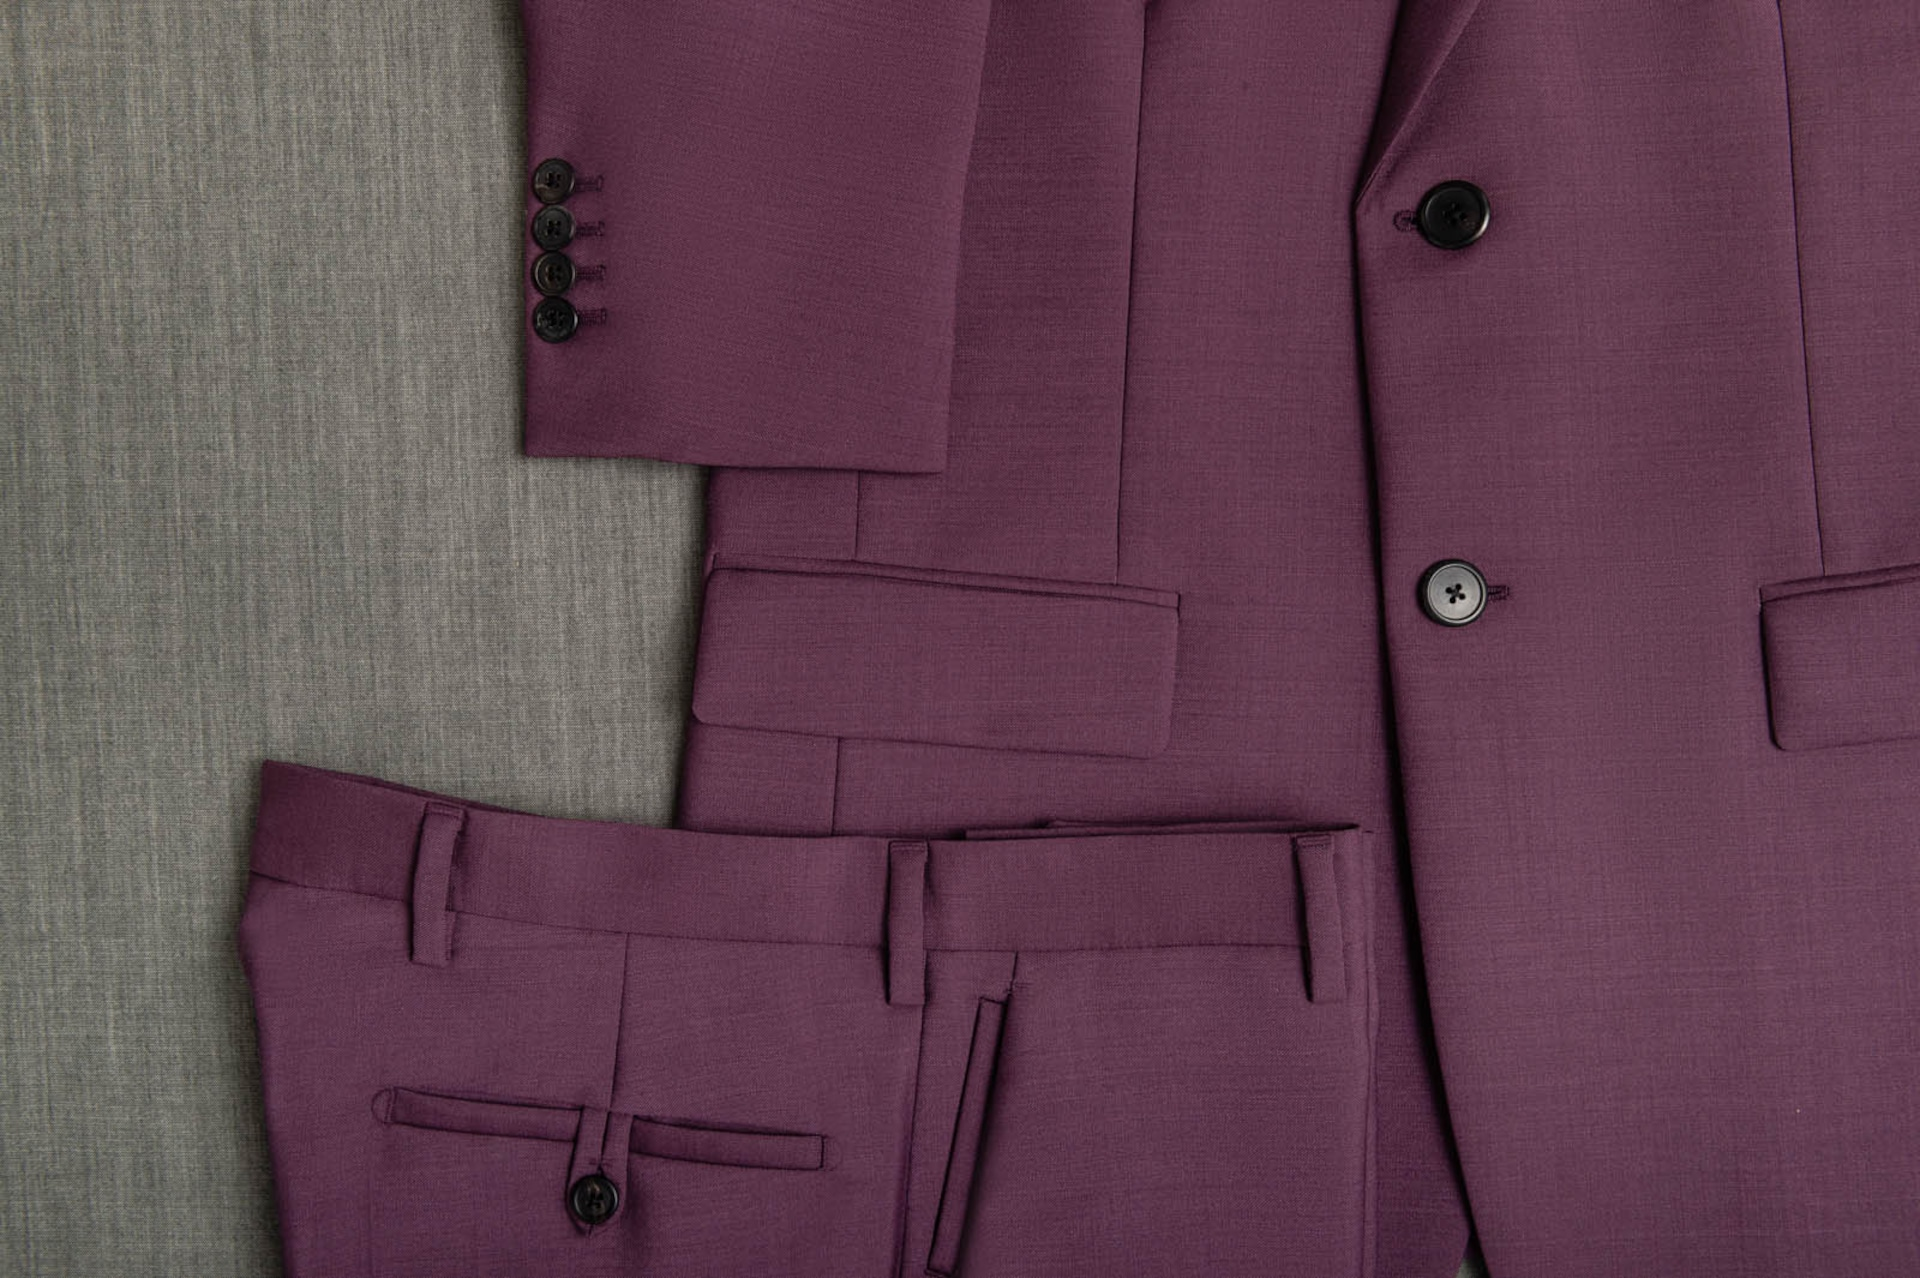 Made to measure suit details